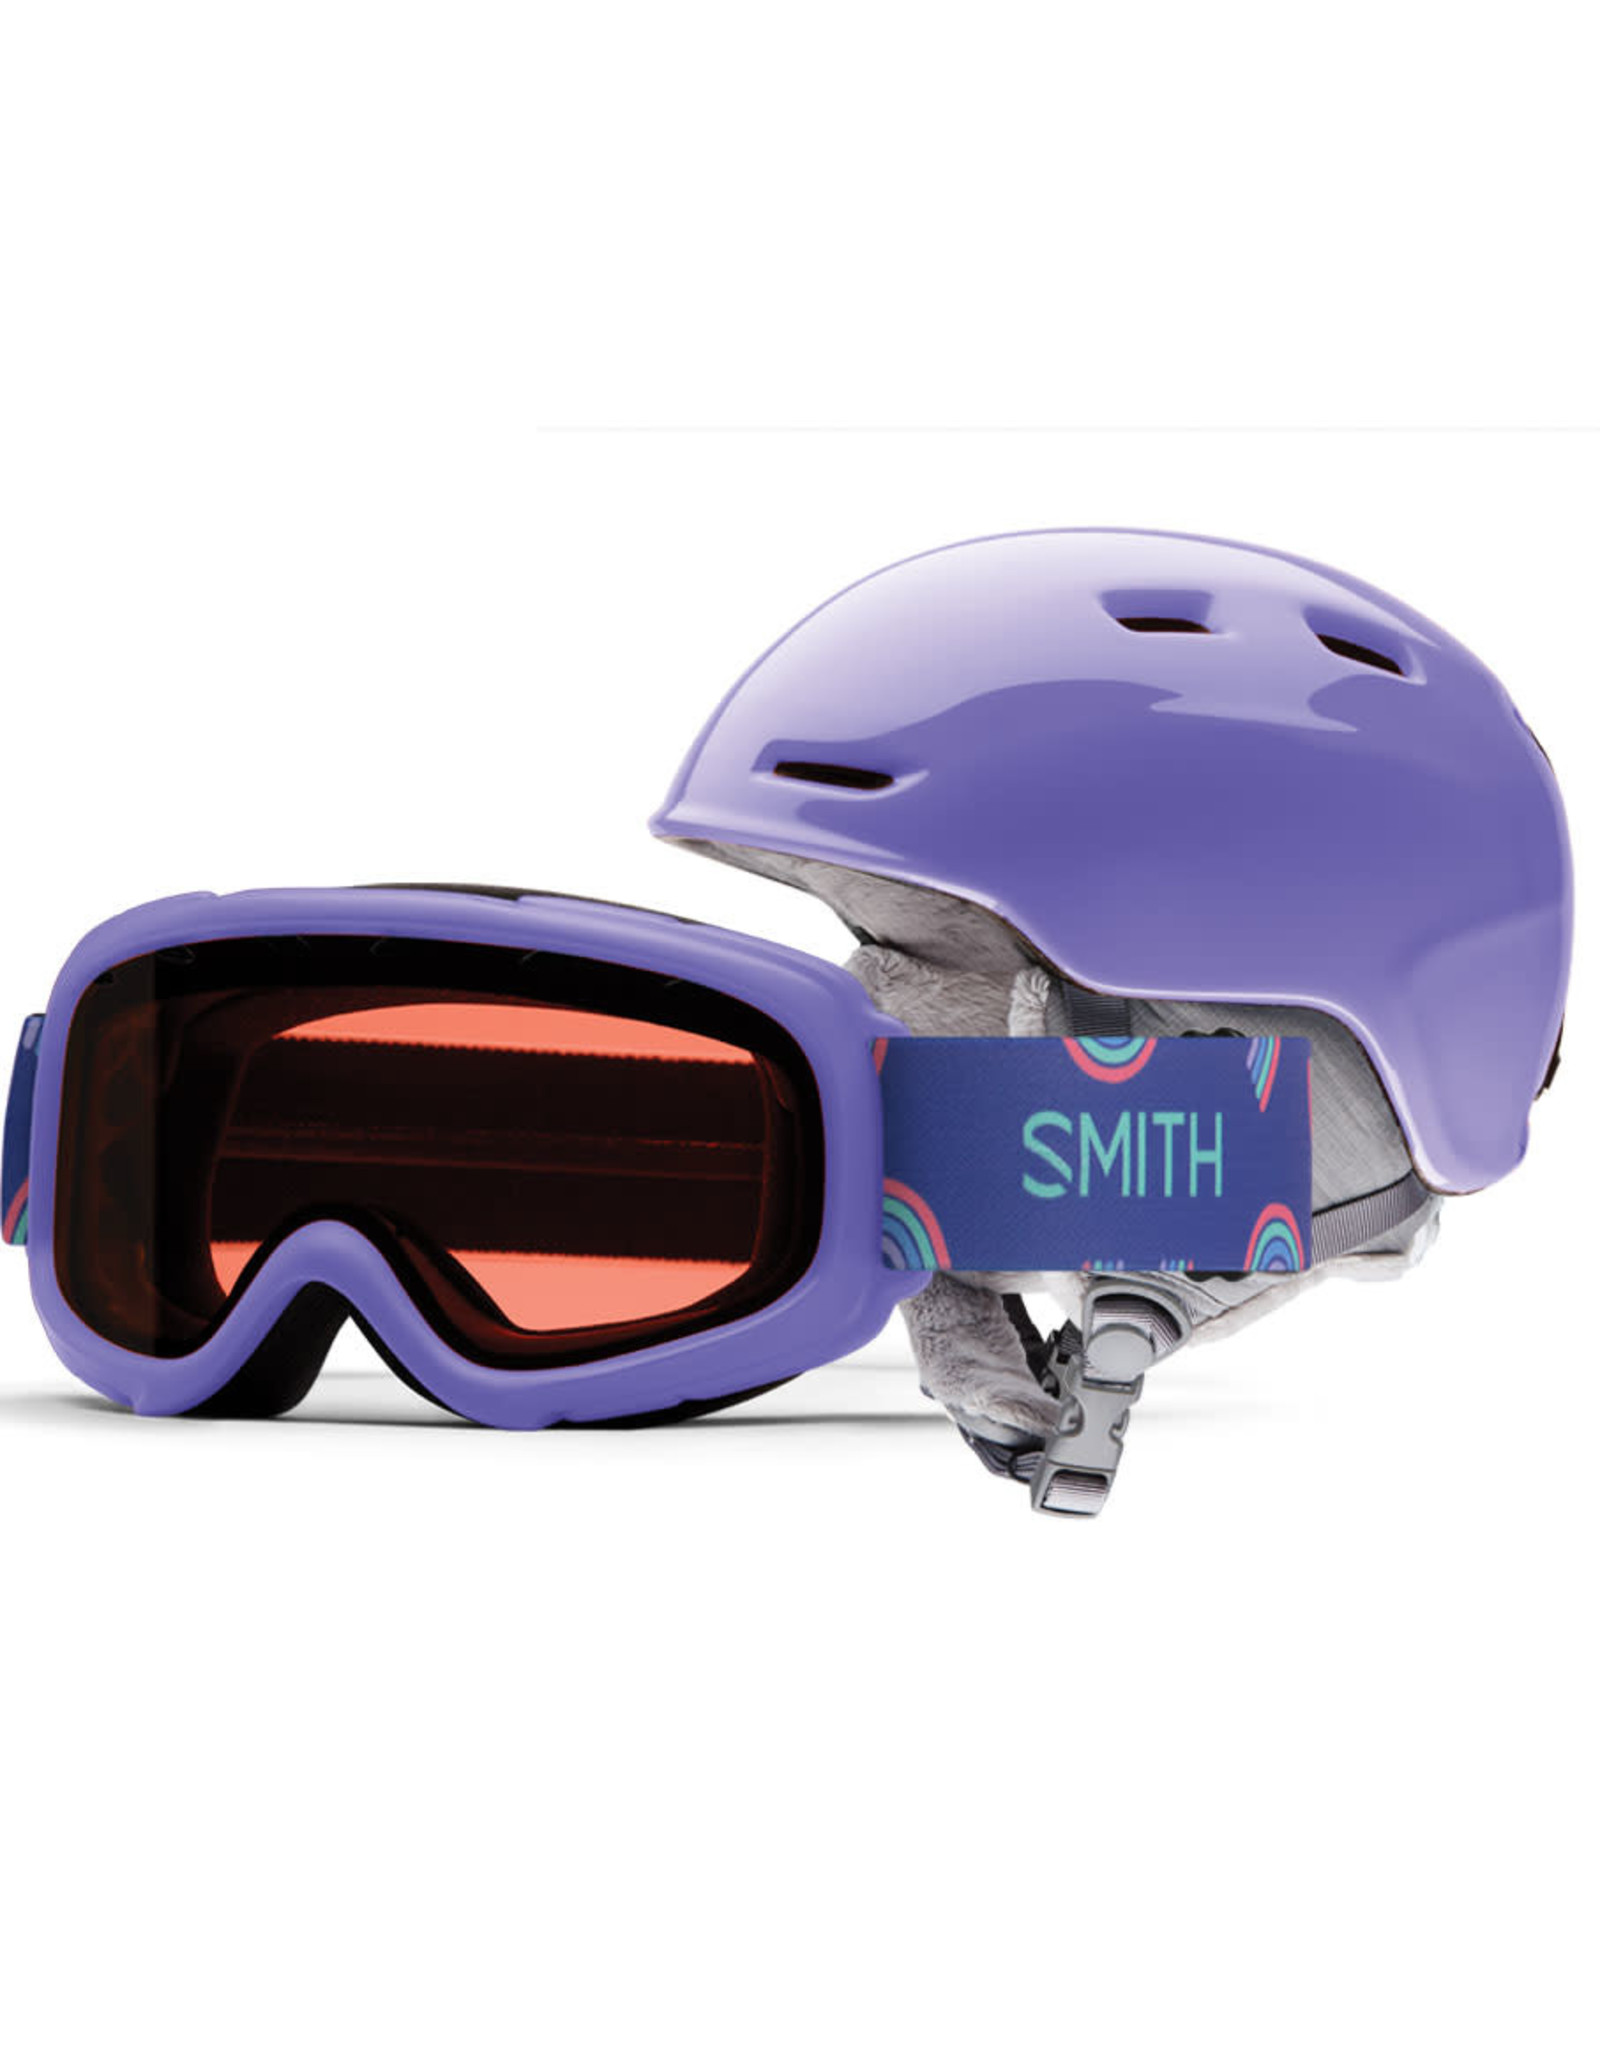 Smith SMITH ZOOM JR GAMBLER COMBO THISTLE 20 GOGGLE & HELMET